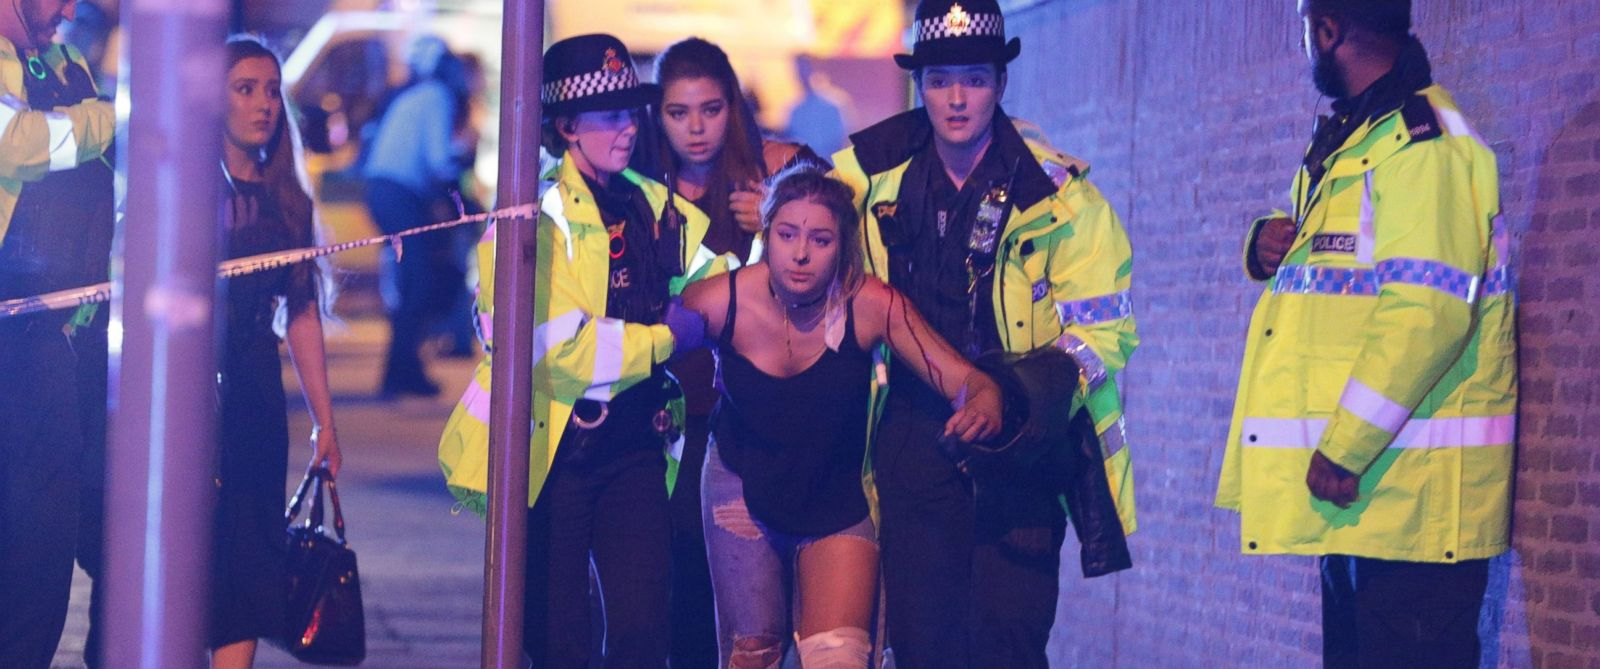 Image result for manchester explosion